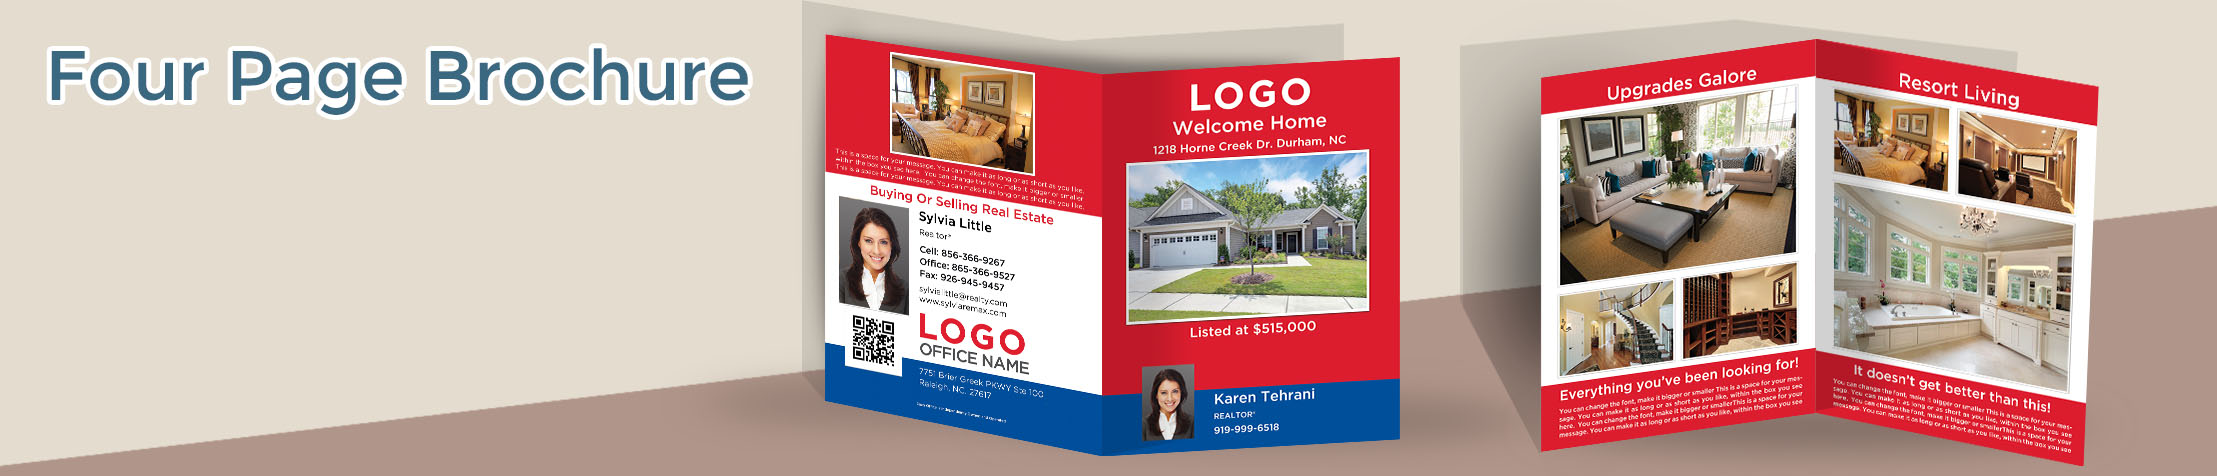 RE/MAX Real Estate Flyers and Brochures - RE/MAX four page brochure templates for open houses and marketing | BestPrintBuy.com